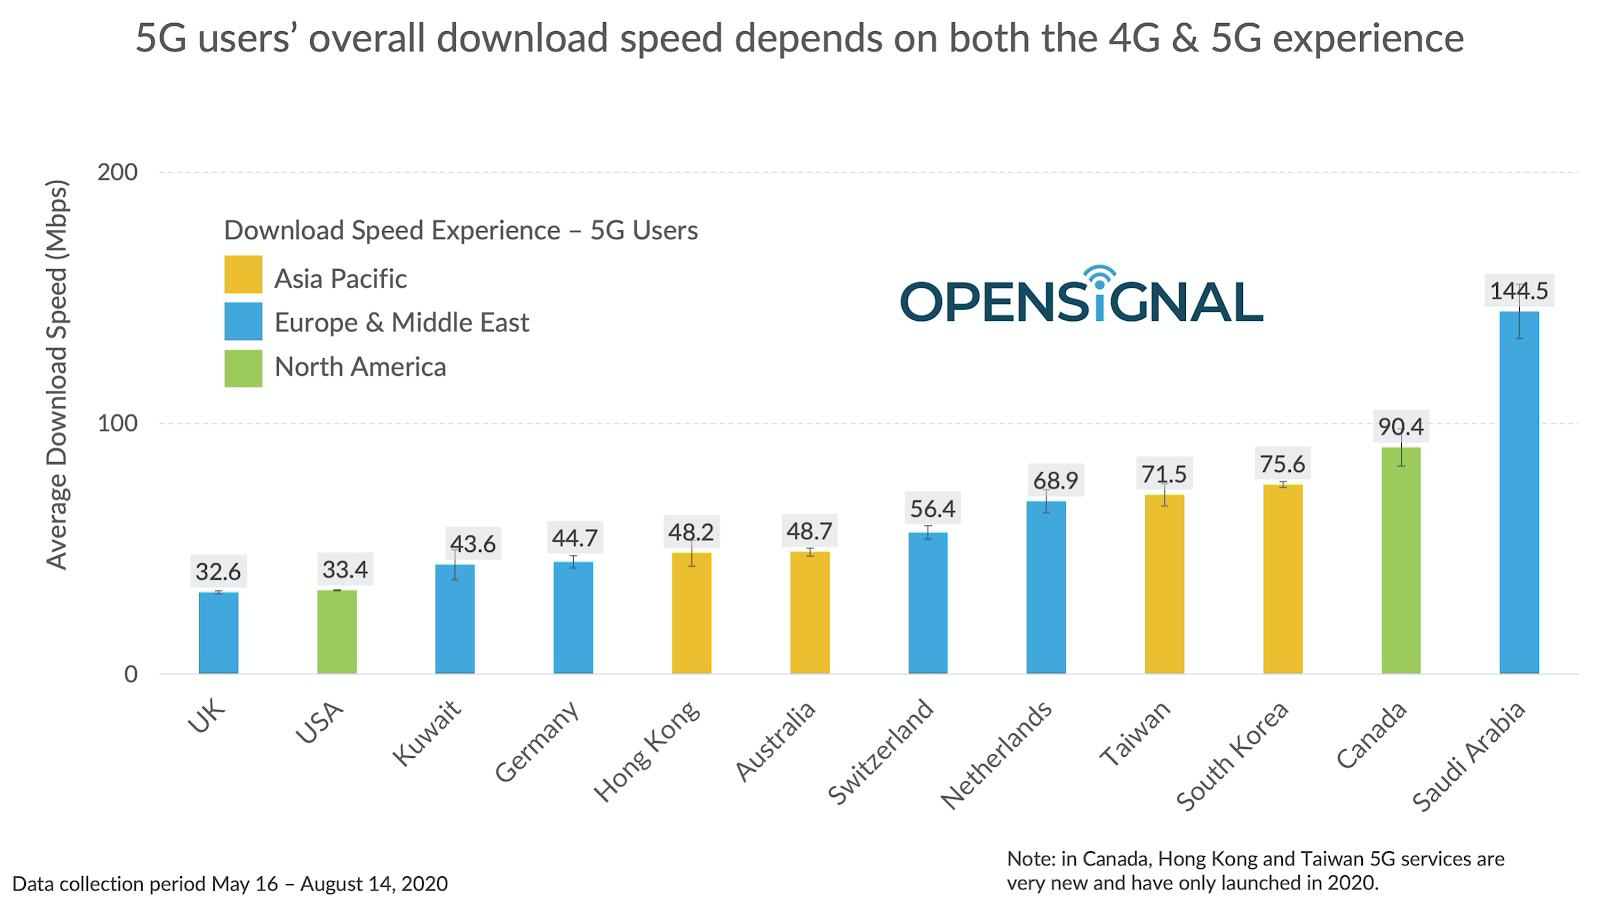 Download Speed Experience